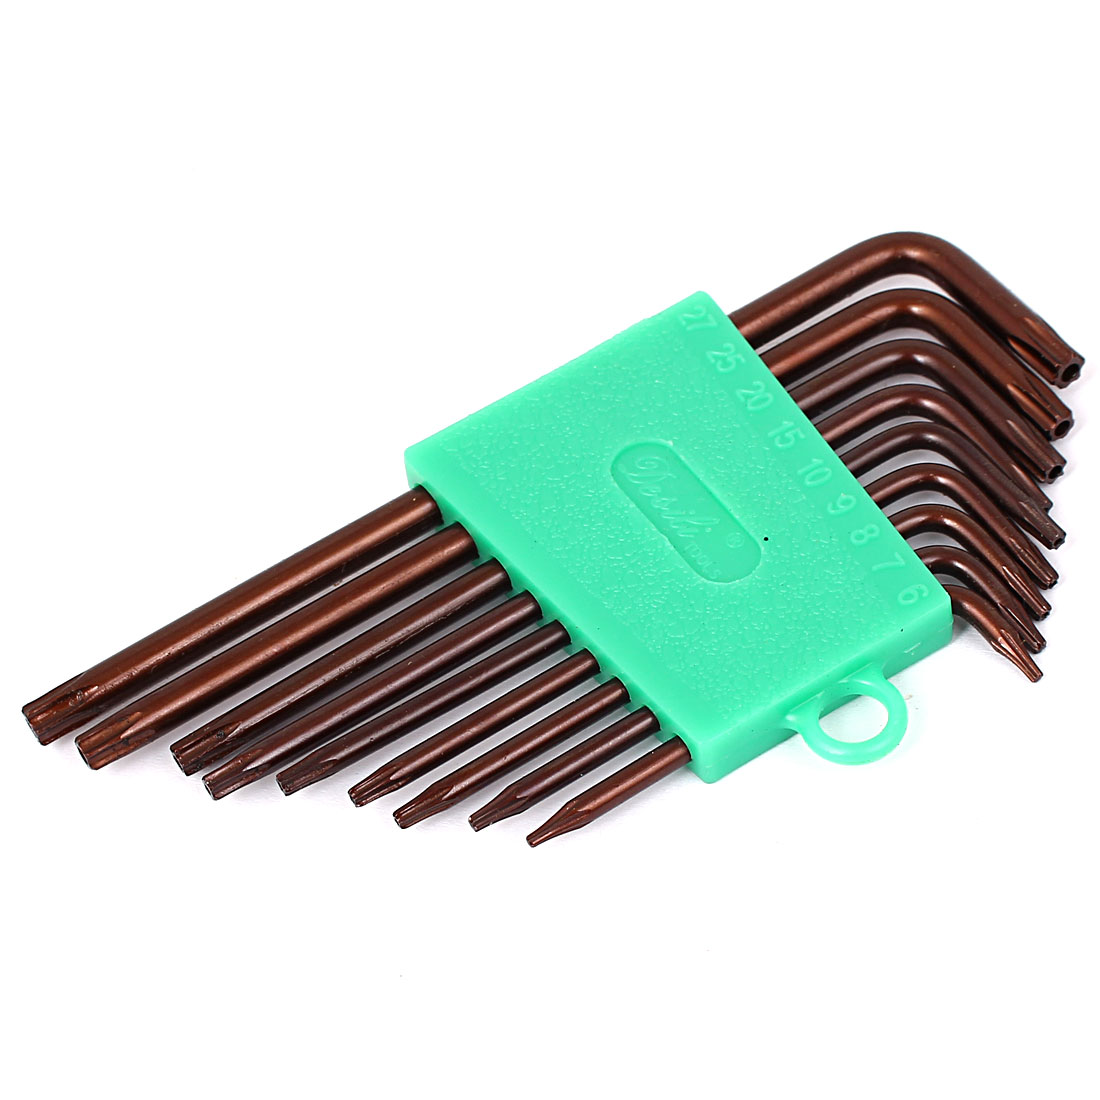 T6-T27 L Style S2 Security Torx Key Wrench Spanner Tools Brown 9 in 1